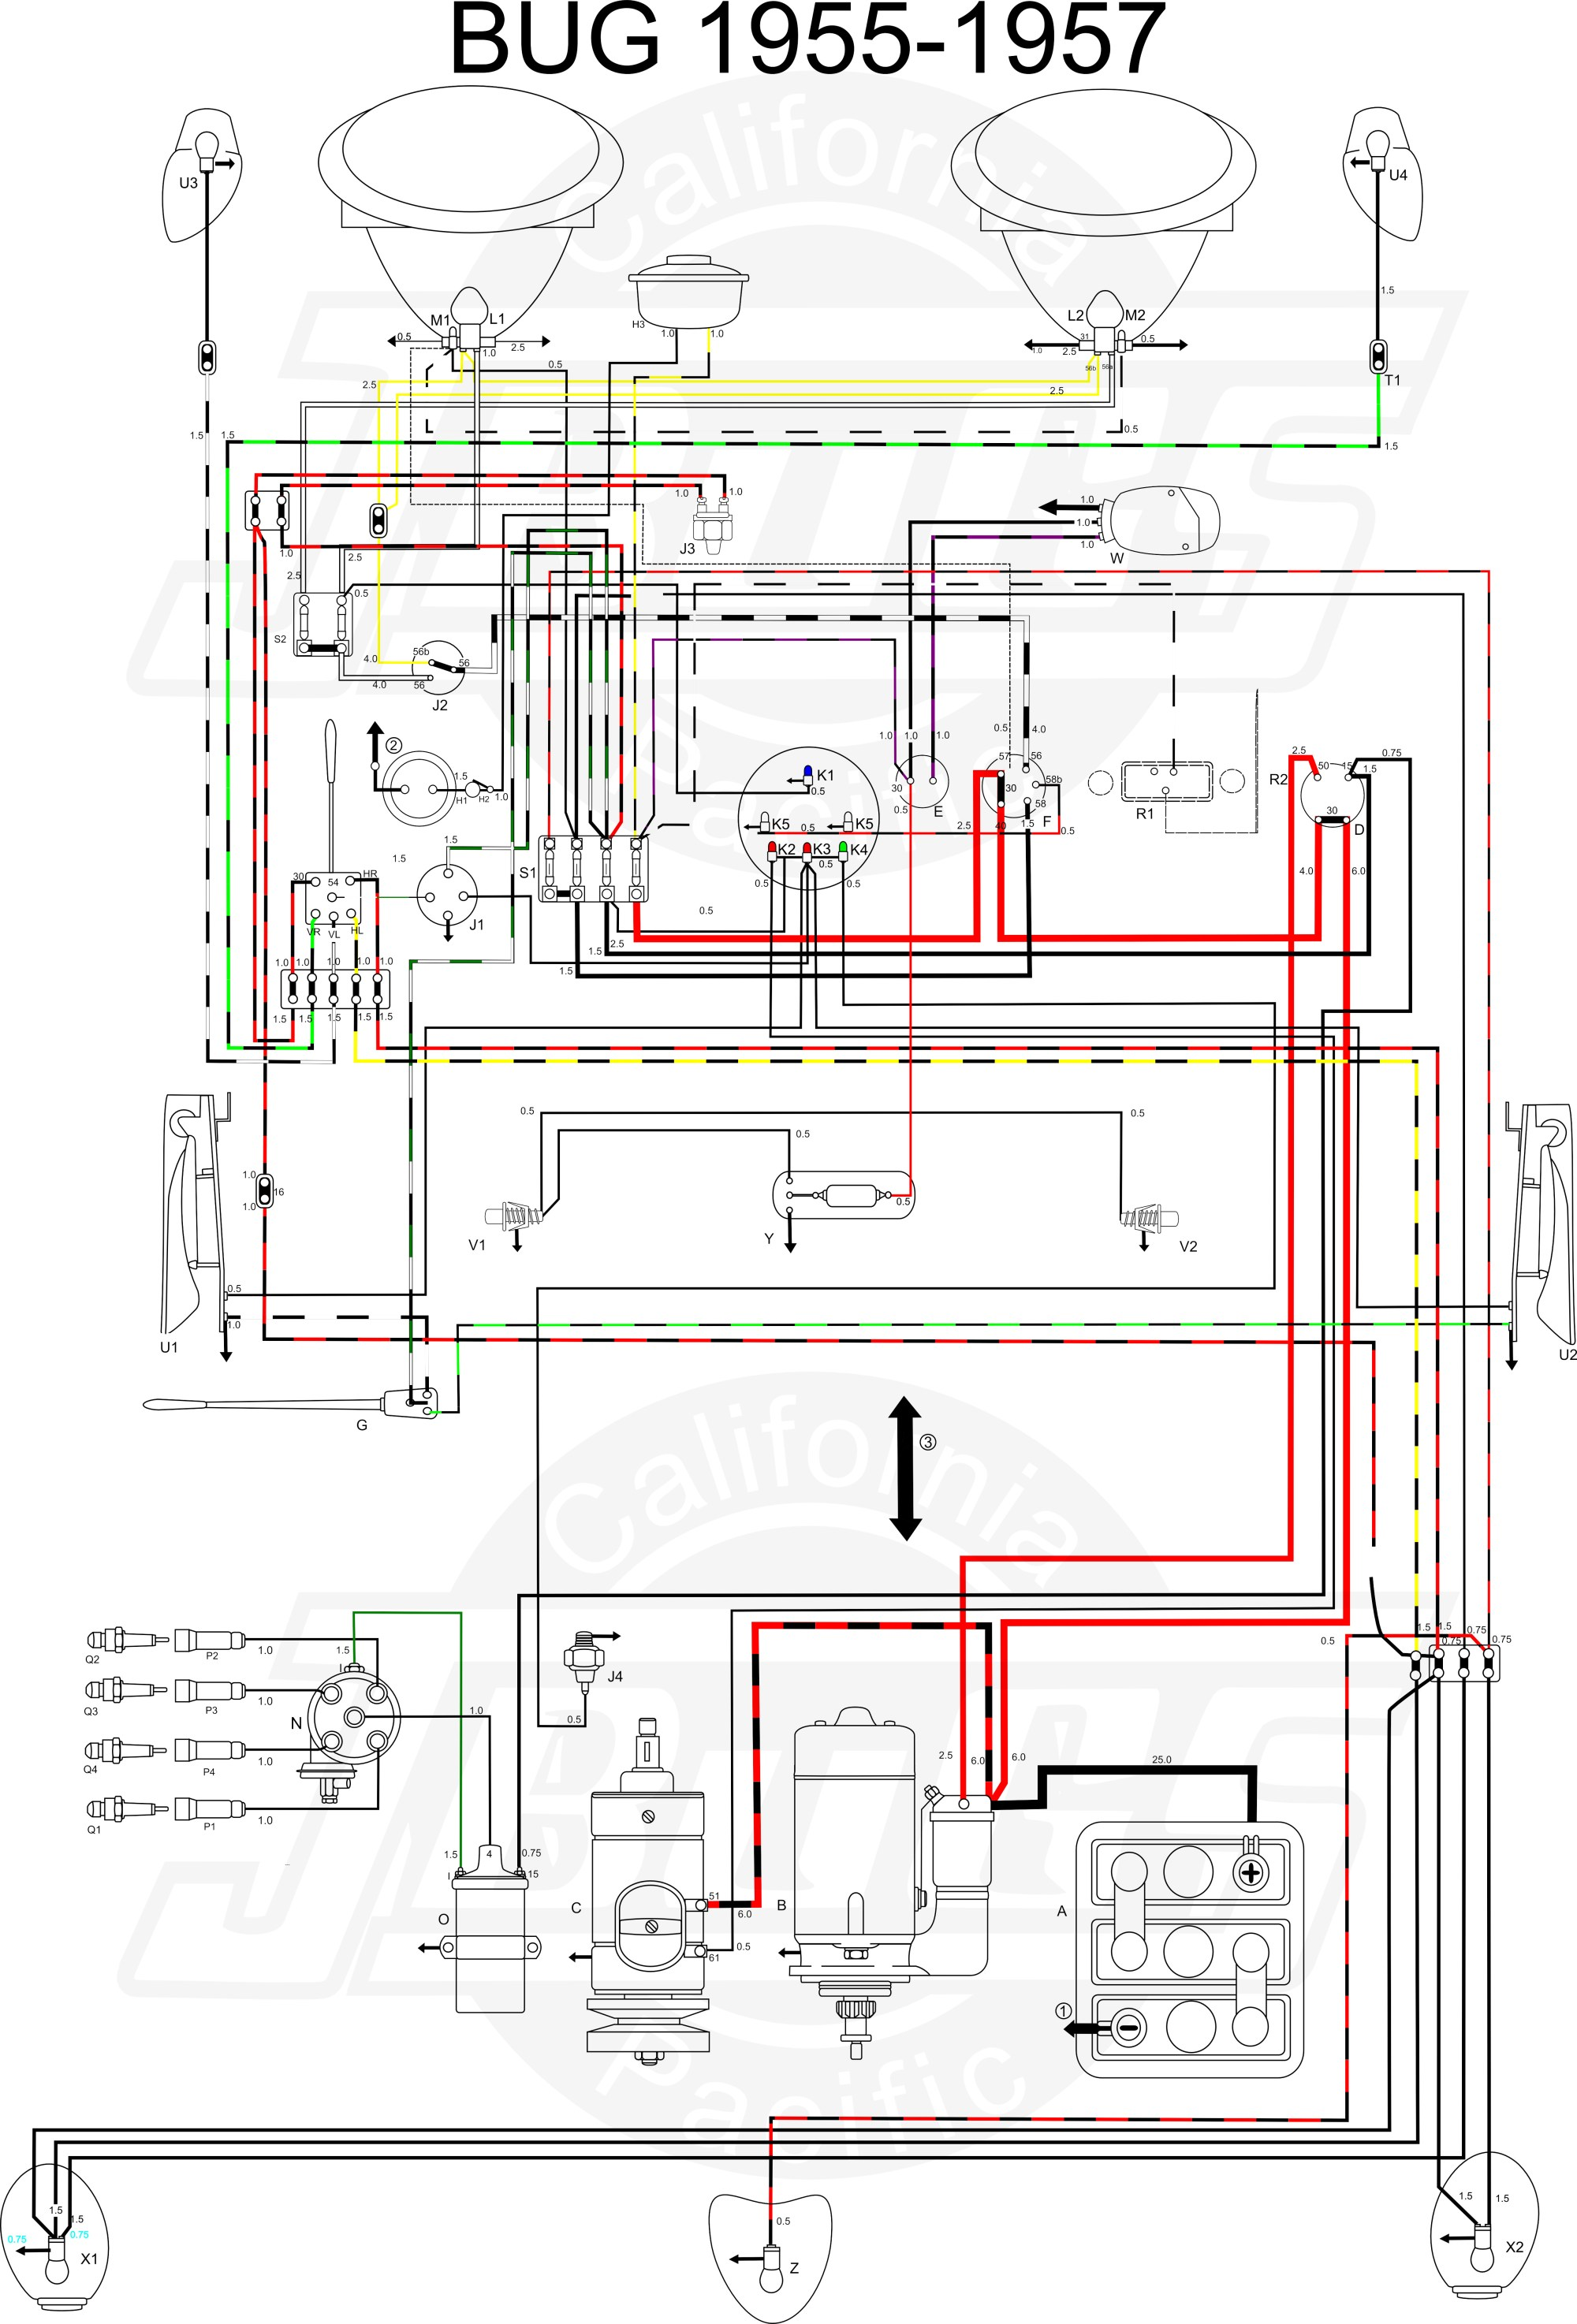 hight resolution of vw bug starter relay wiring wiring diagram datasource starter relay wiring diagram for vw